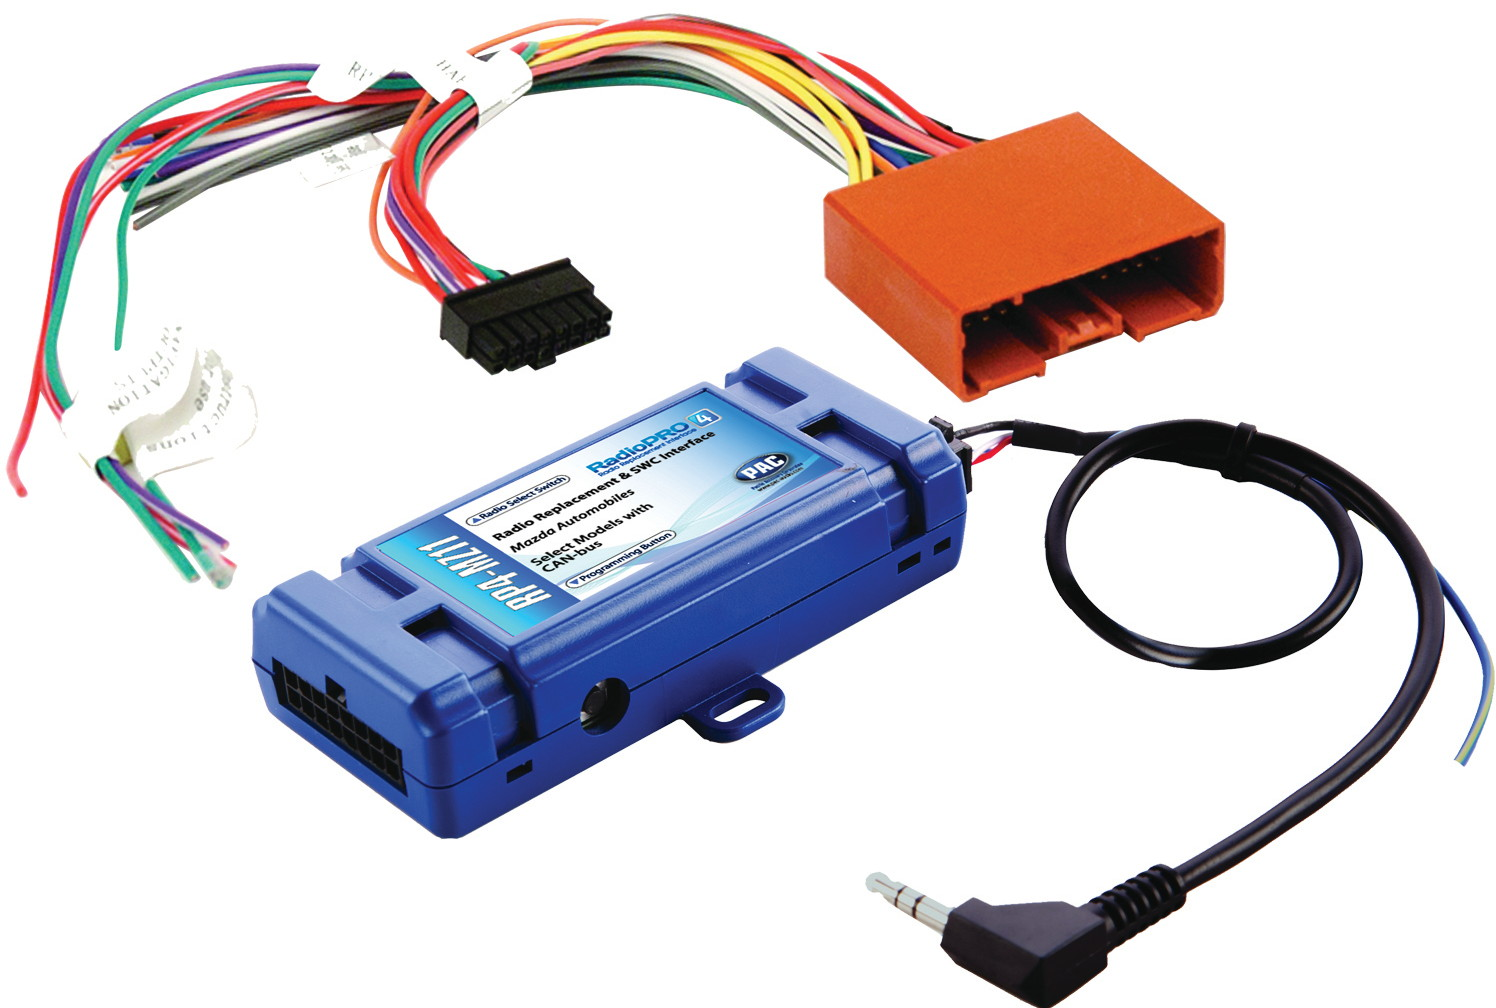 PAC RP4-MZ11 Radio Replacement Interface With Built In Pre-Programmed Steering Wheel Control Retention and Navigation Outputs